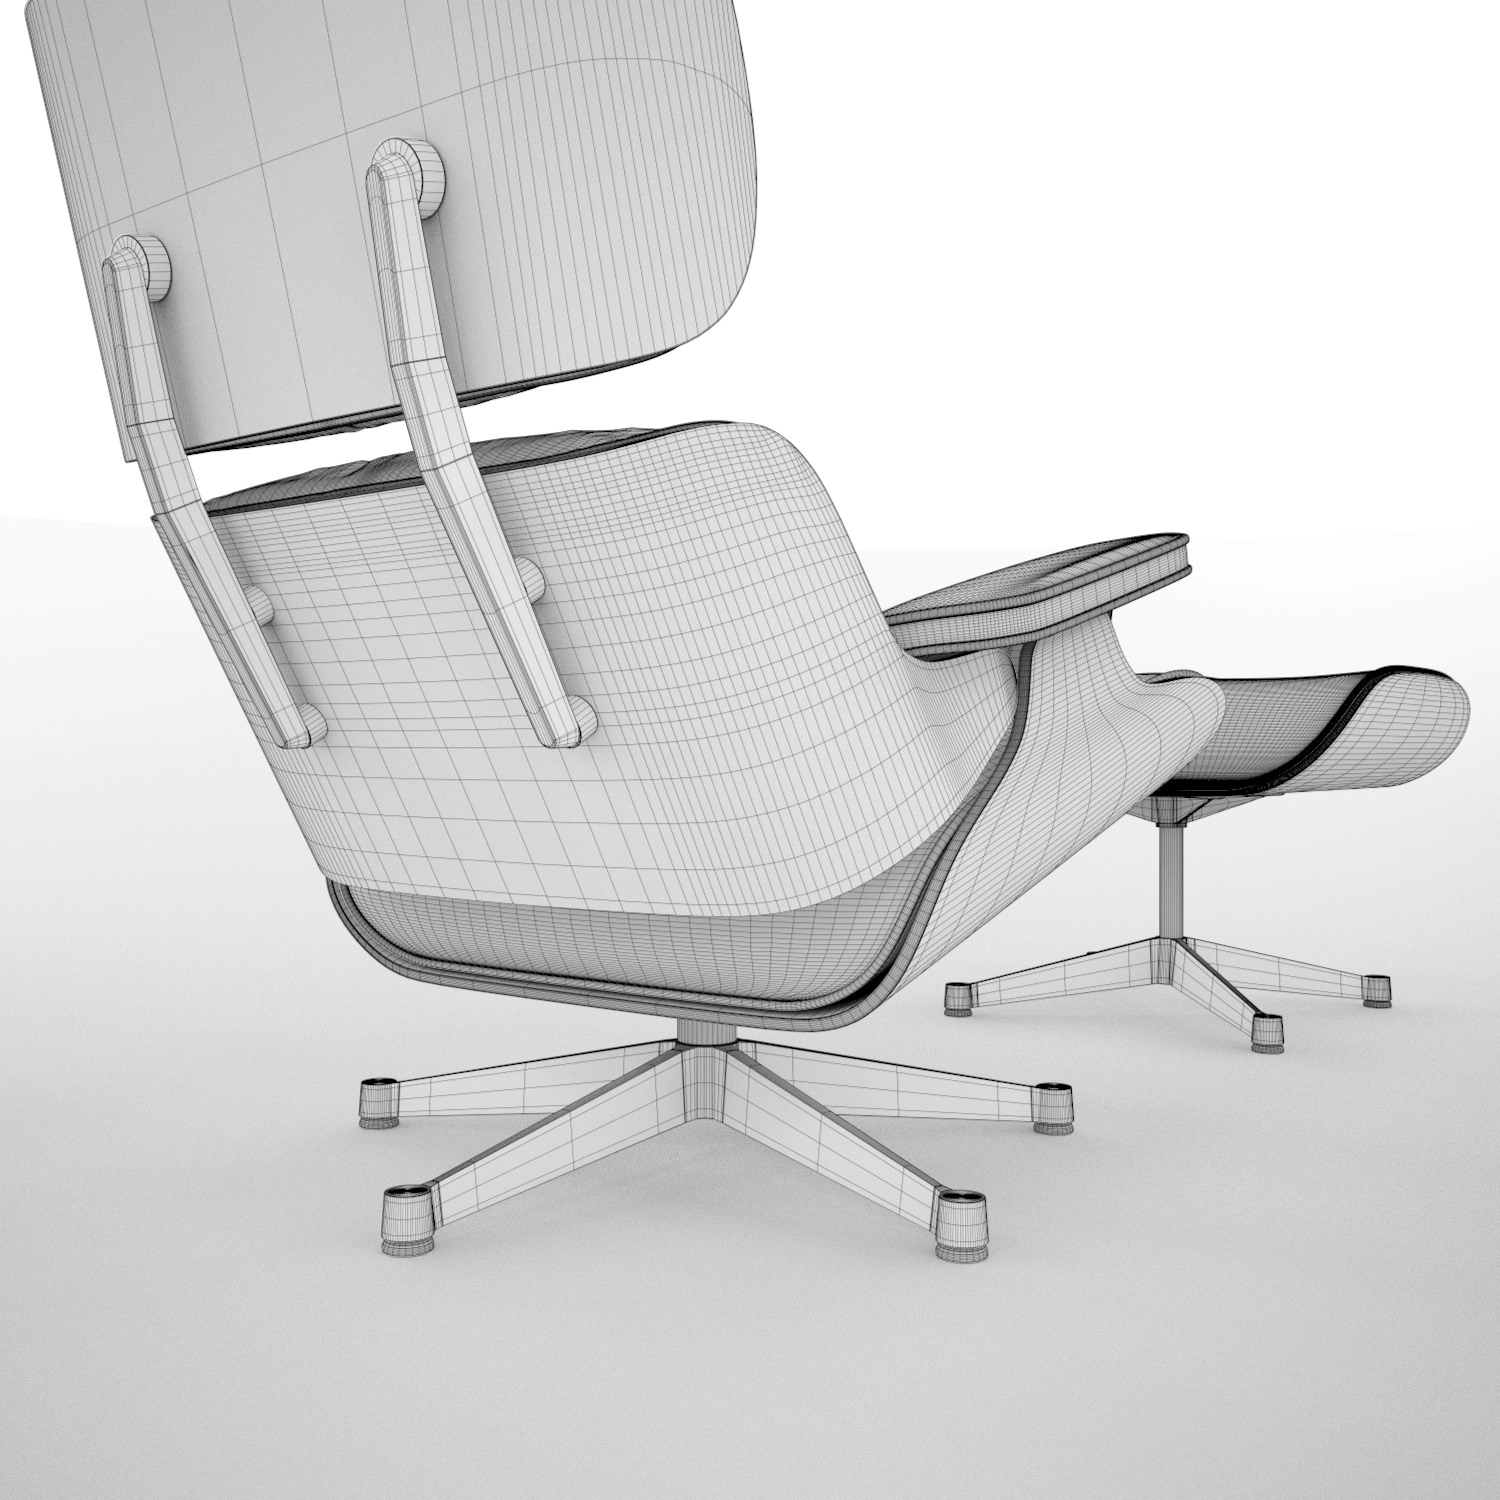 vitra lounge chair ultimate camping eames hi poly 3d model c4d cgtrader